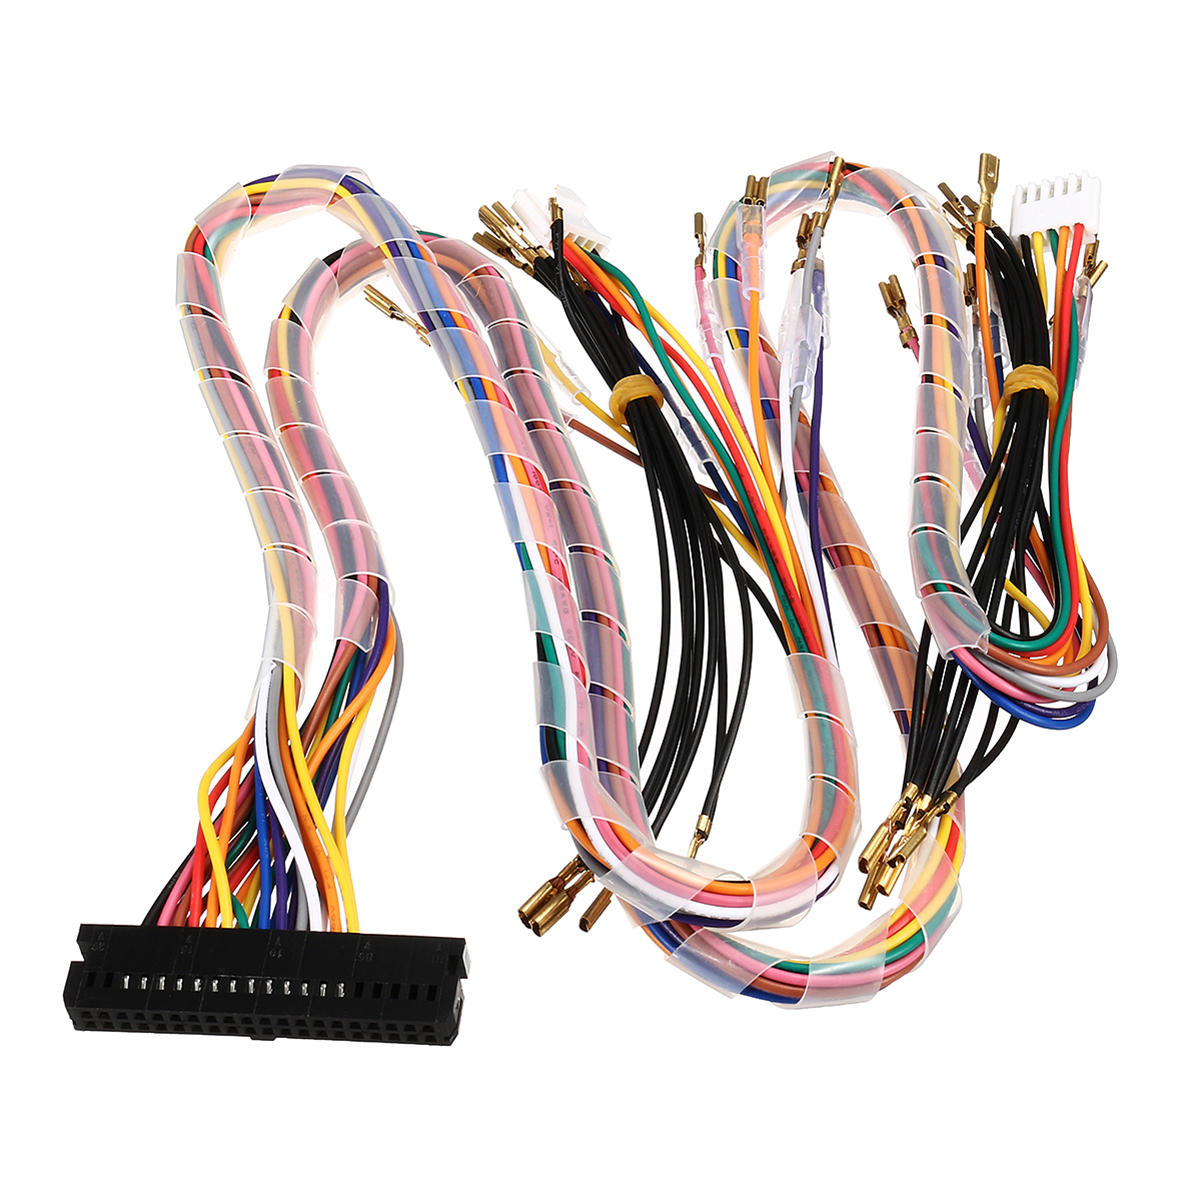 Wiring Harness Cable Replacement Parts emble For Arcade Jamma Board on